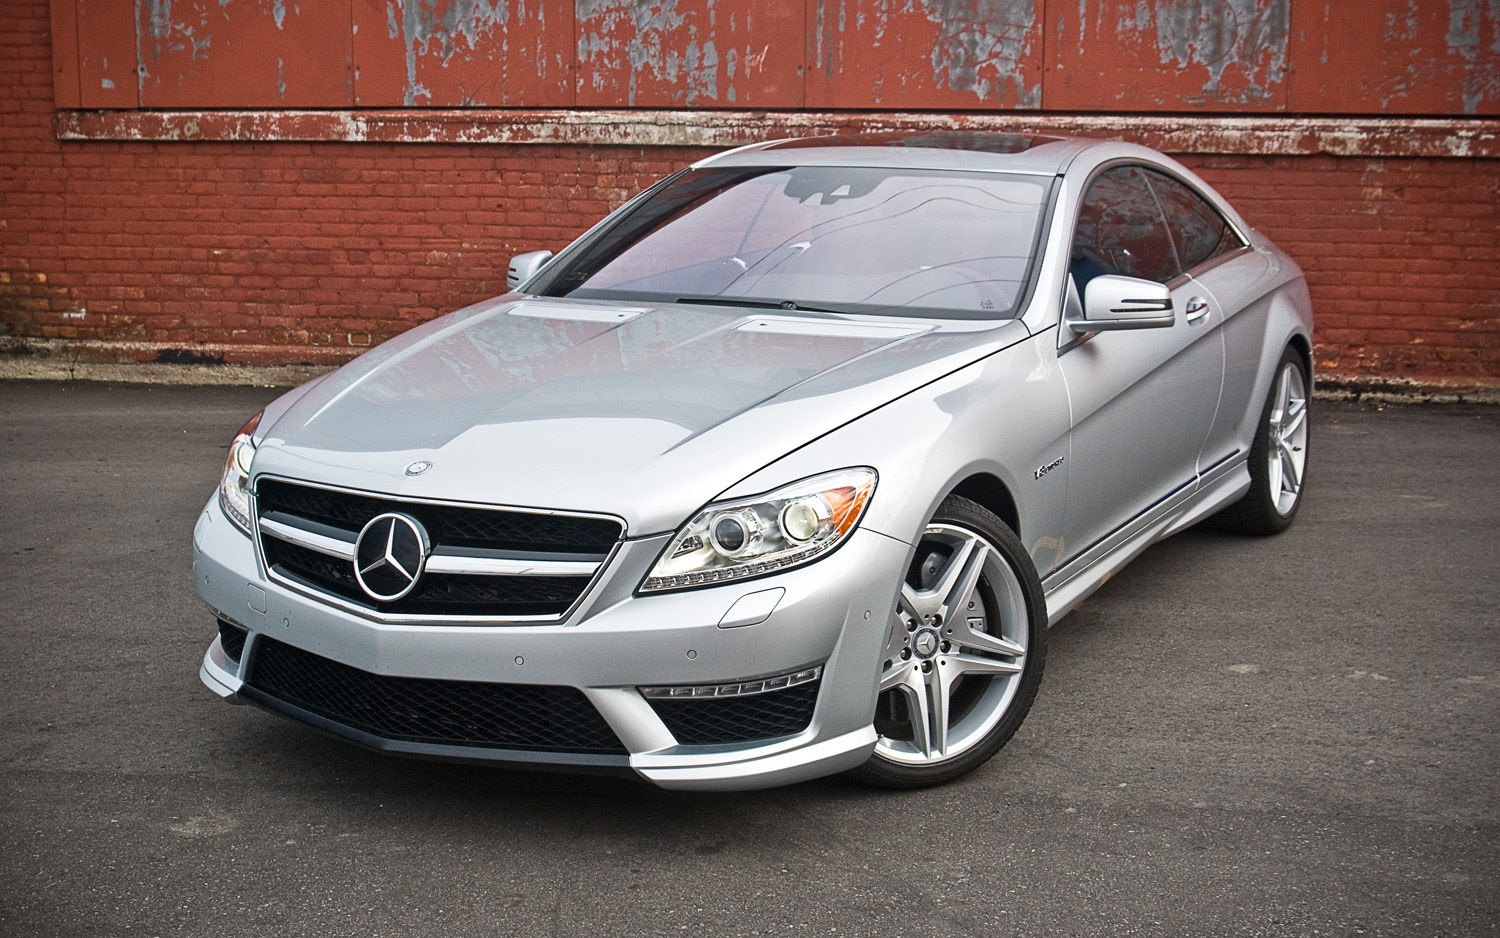 2011 Mercedes Benz Cl63 Amg Front Left View Parked